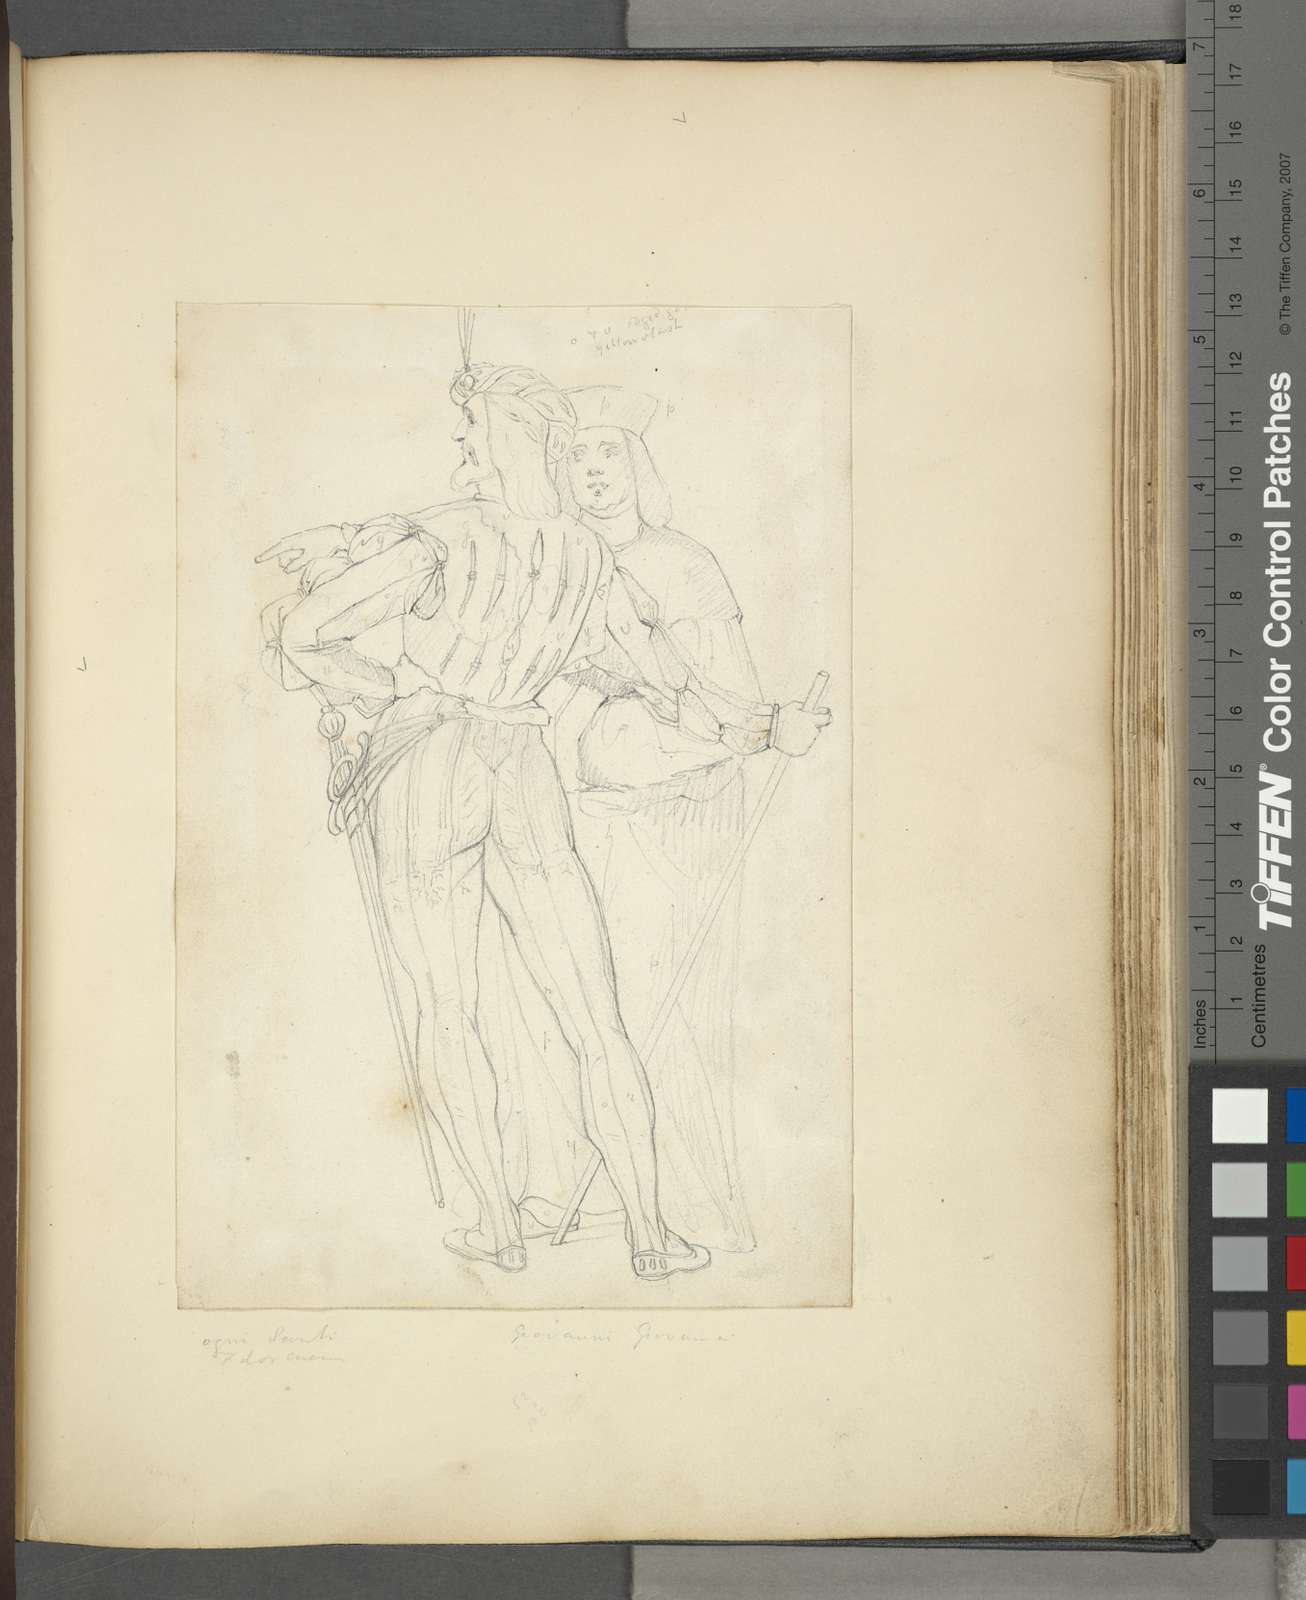 [Two men, one in back view wearing tights, doublet, sword, a hat with plume, and holding a staff.]